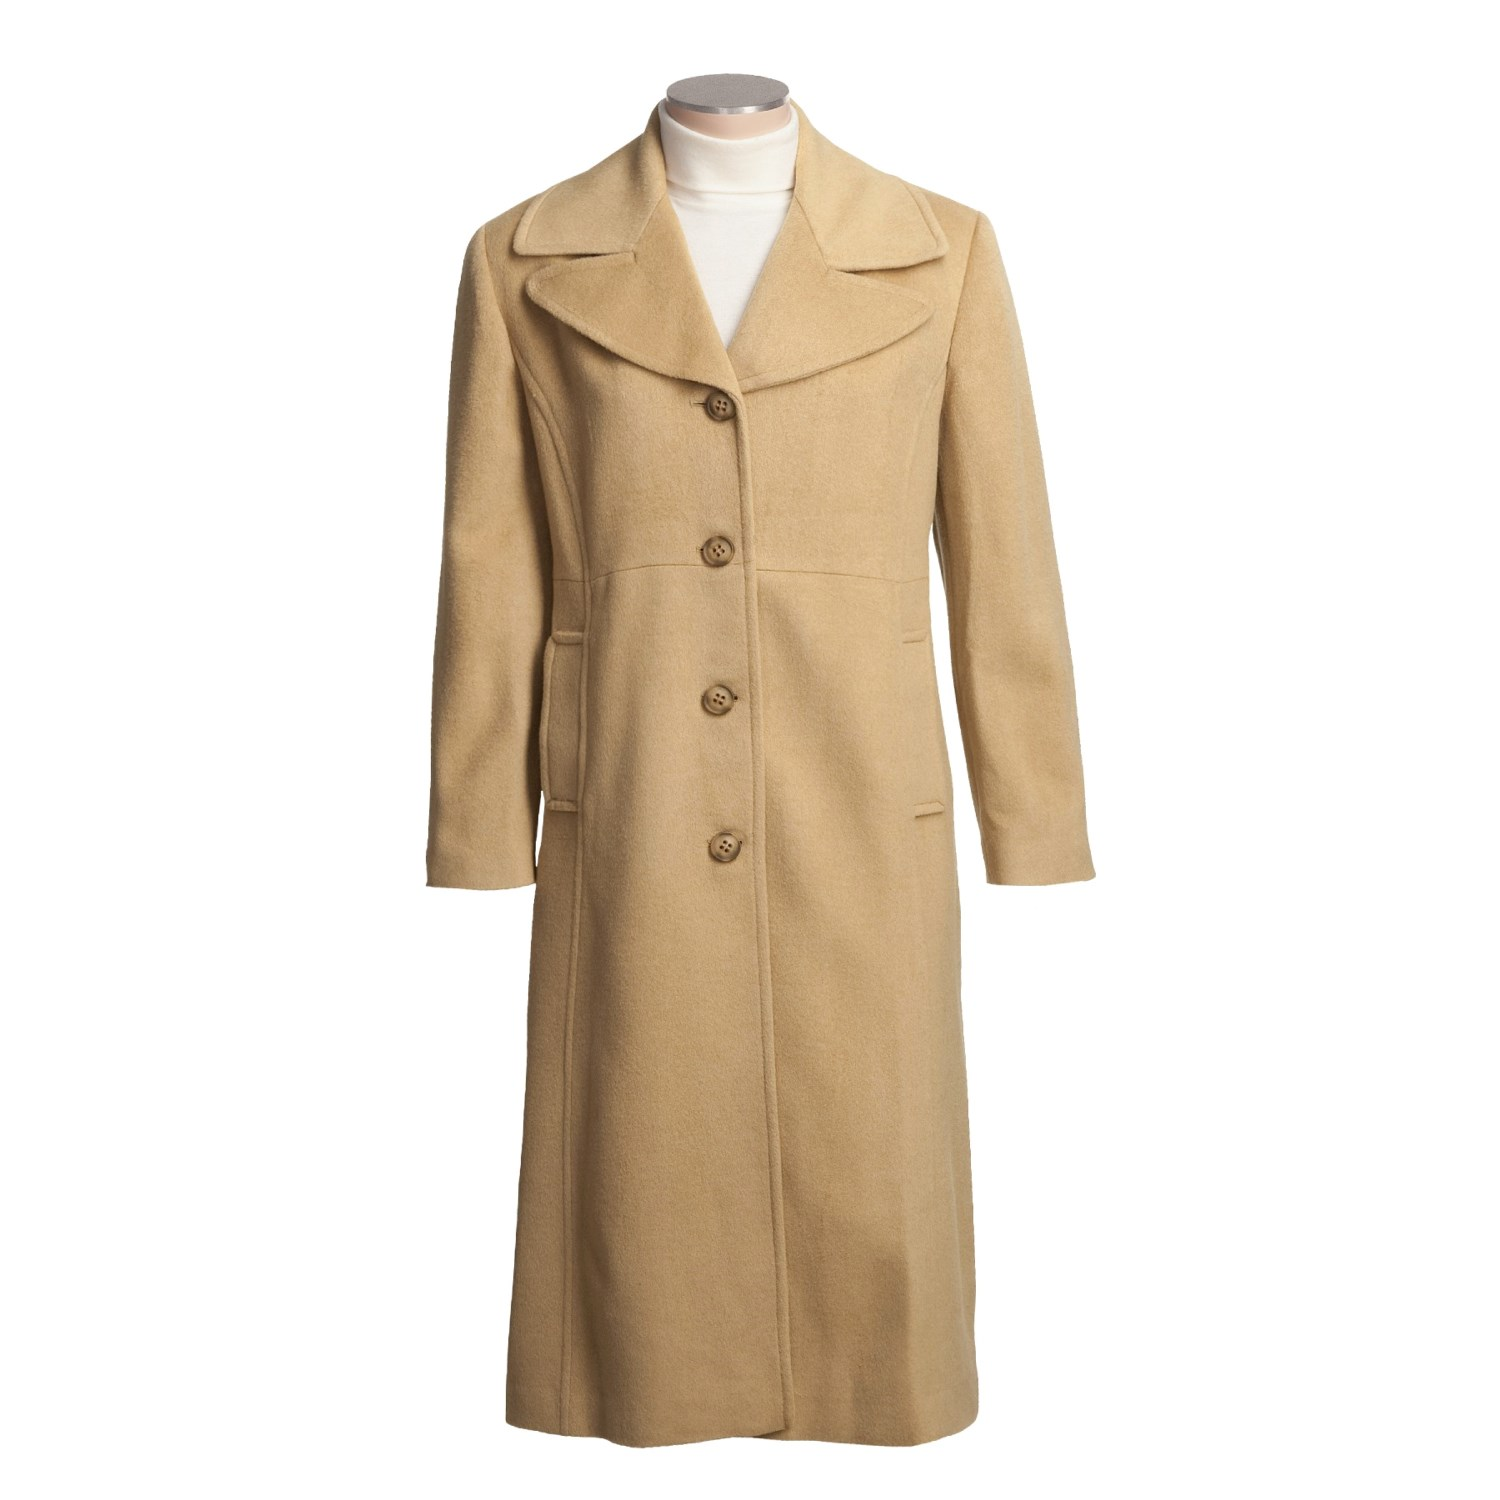 Find womens camel coat at Macy's Macy's Presents: The Edit - A curated mix of fashion and inspiration Check It Out Free Shipping with $49 purchase + Free Store Pickup.